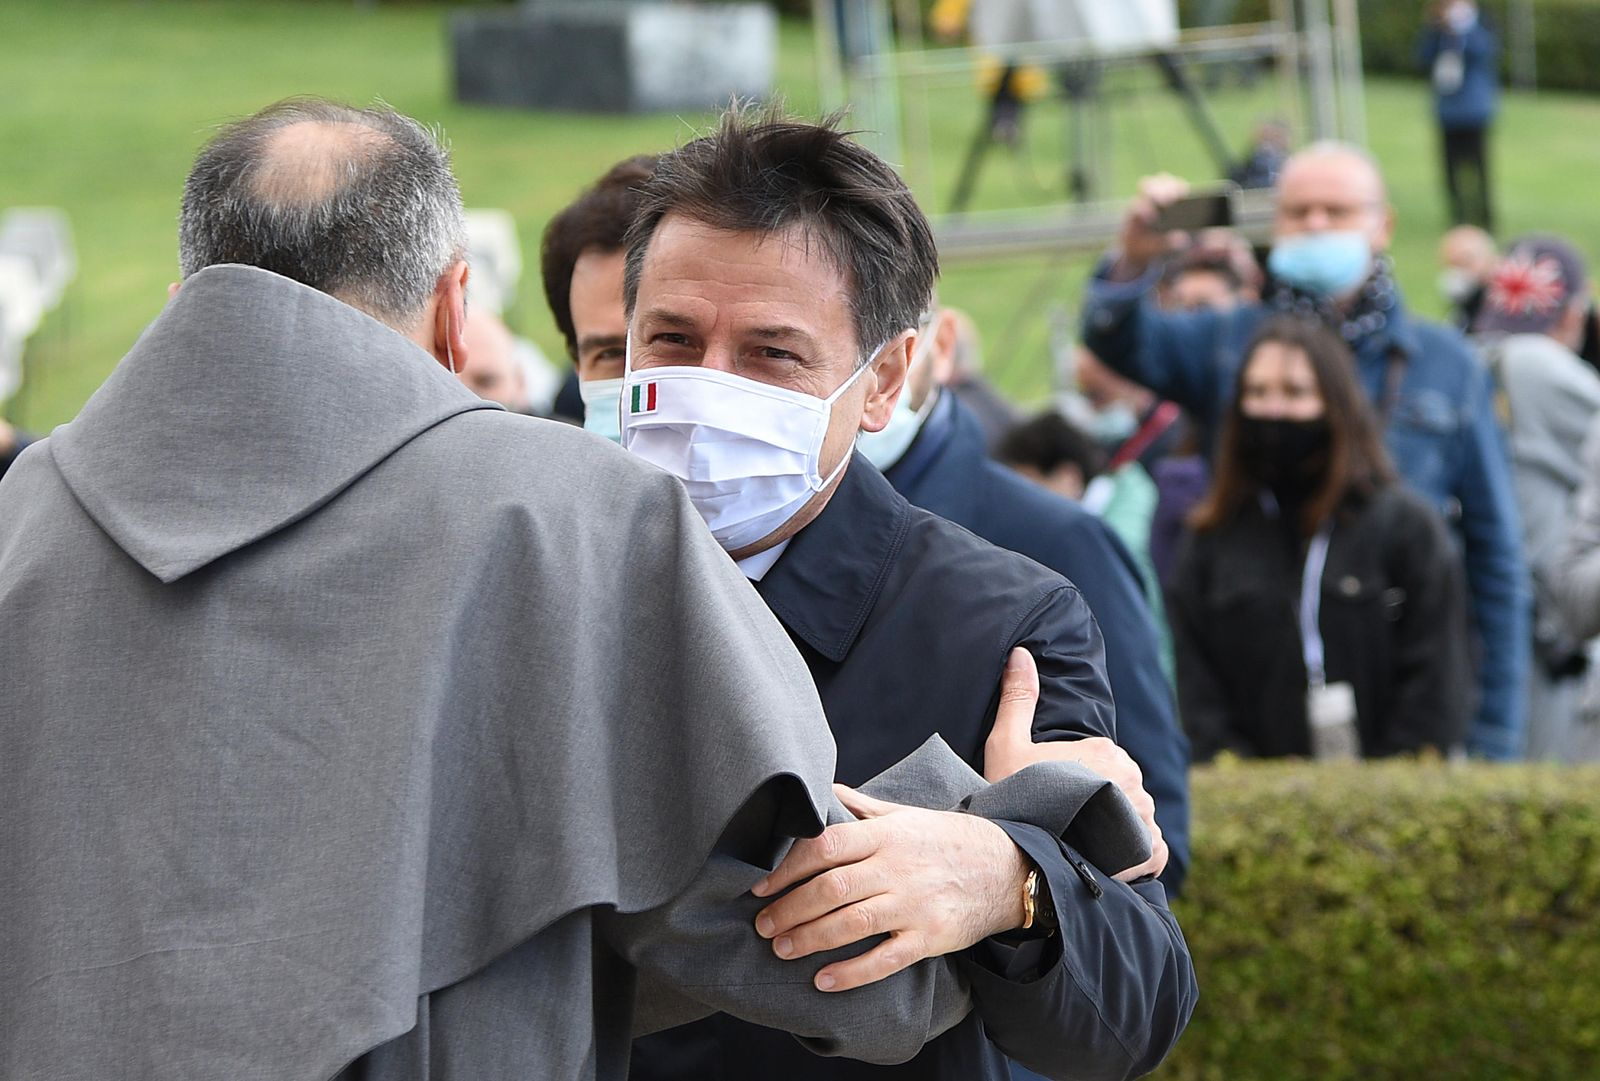 Italian Premier Conte in Assisi for celebrations of Saint Francis, Assisi Perugia, Italy - 04 Oct 2020